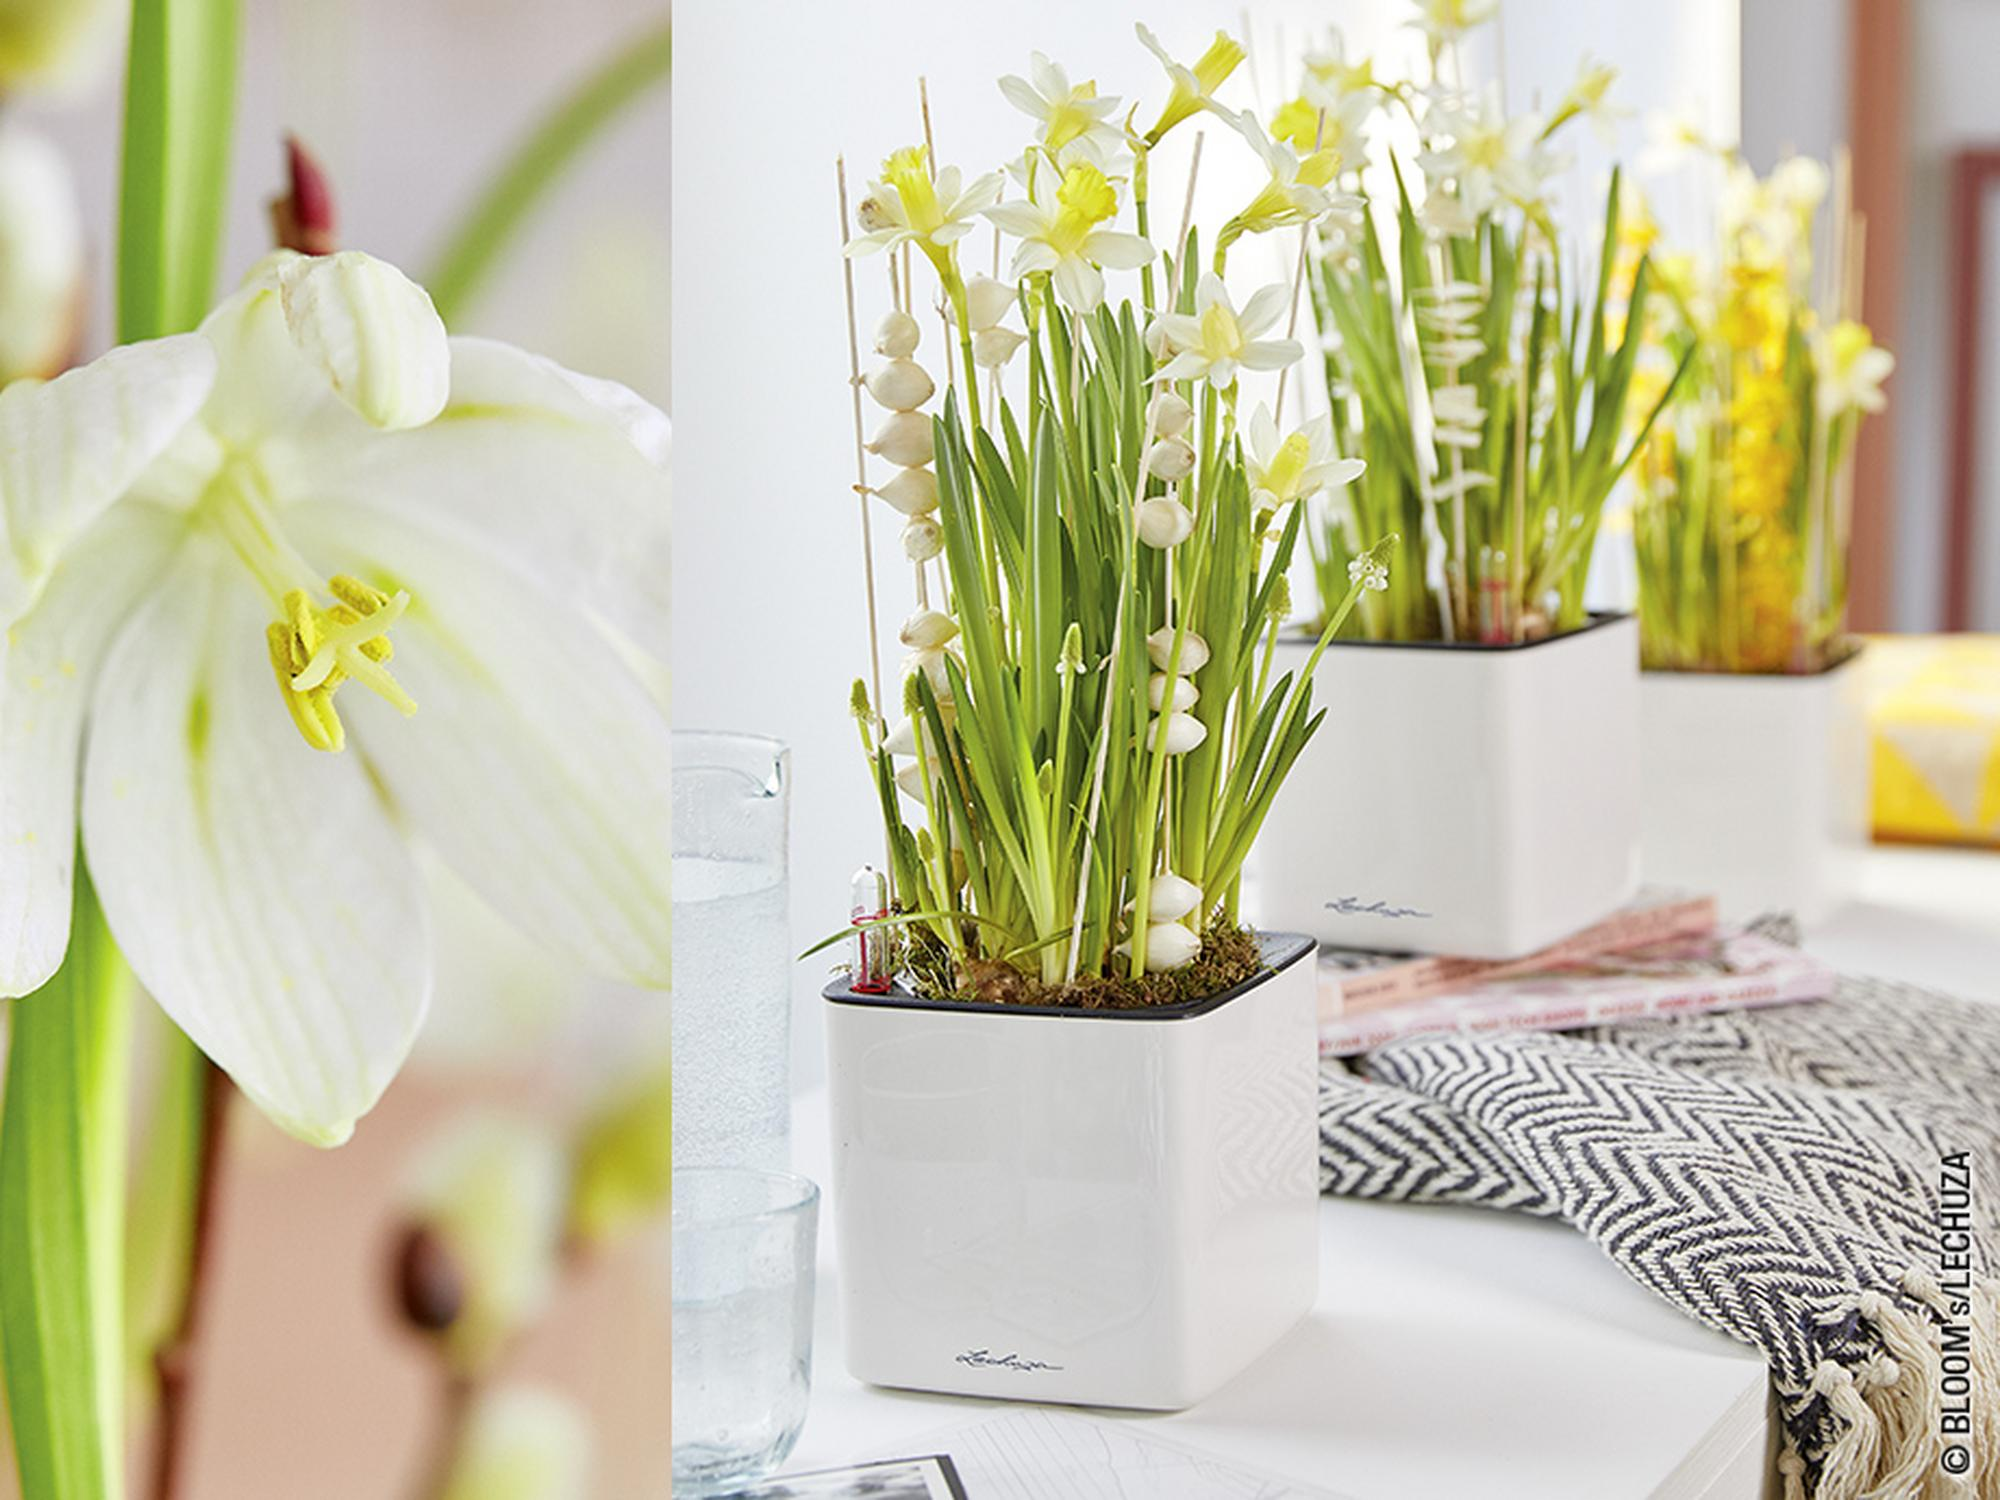 CUBE Glossy arranged with daffodils